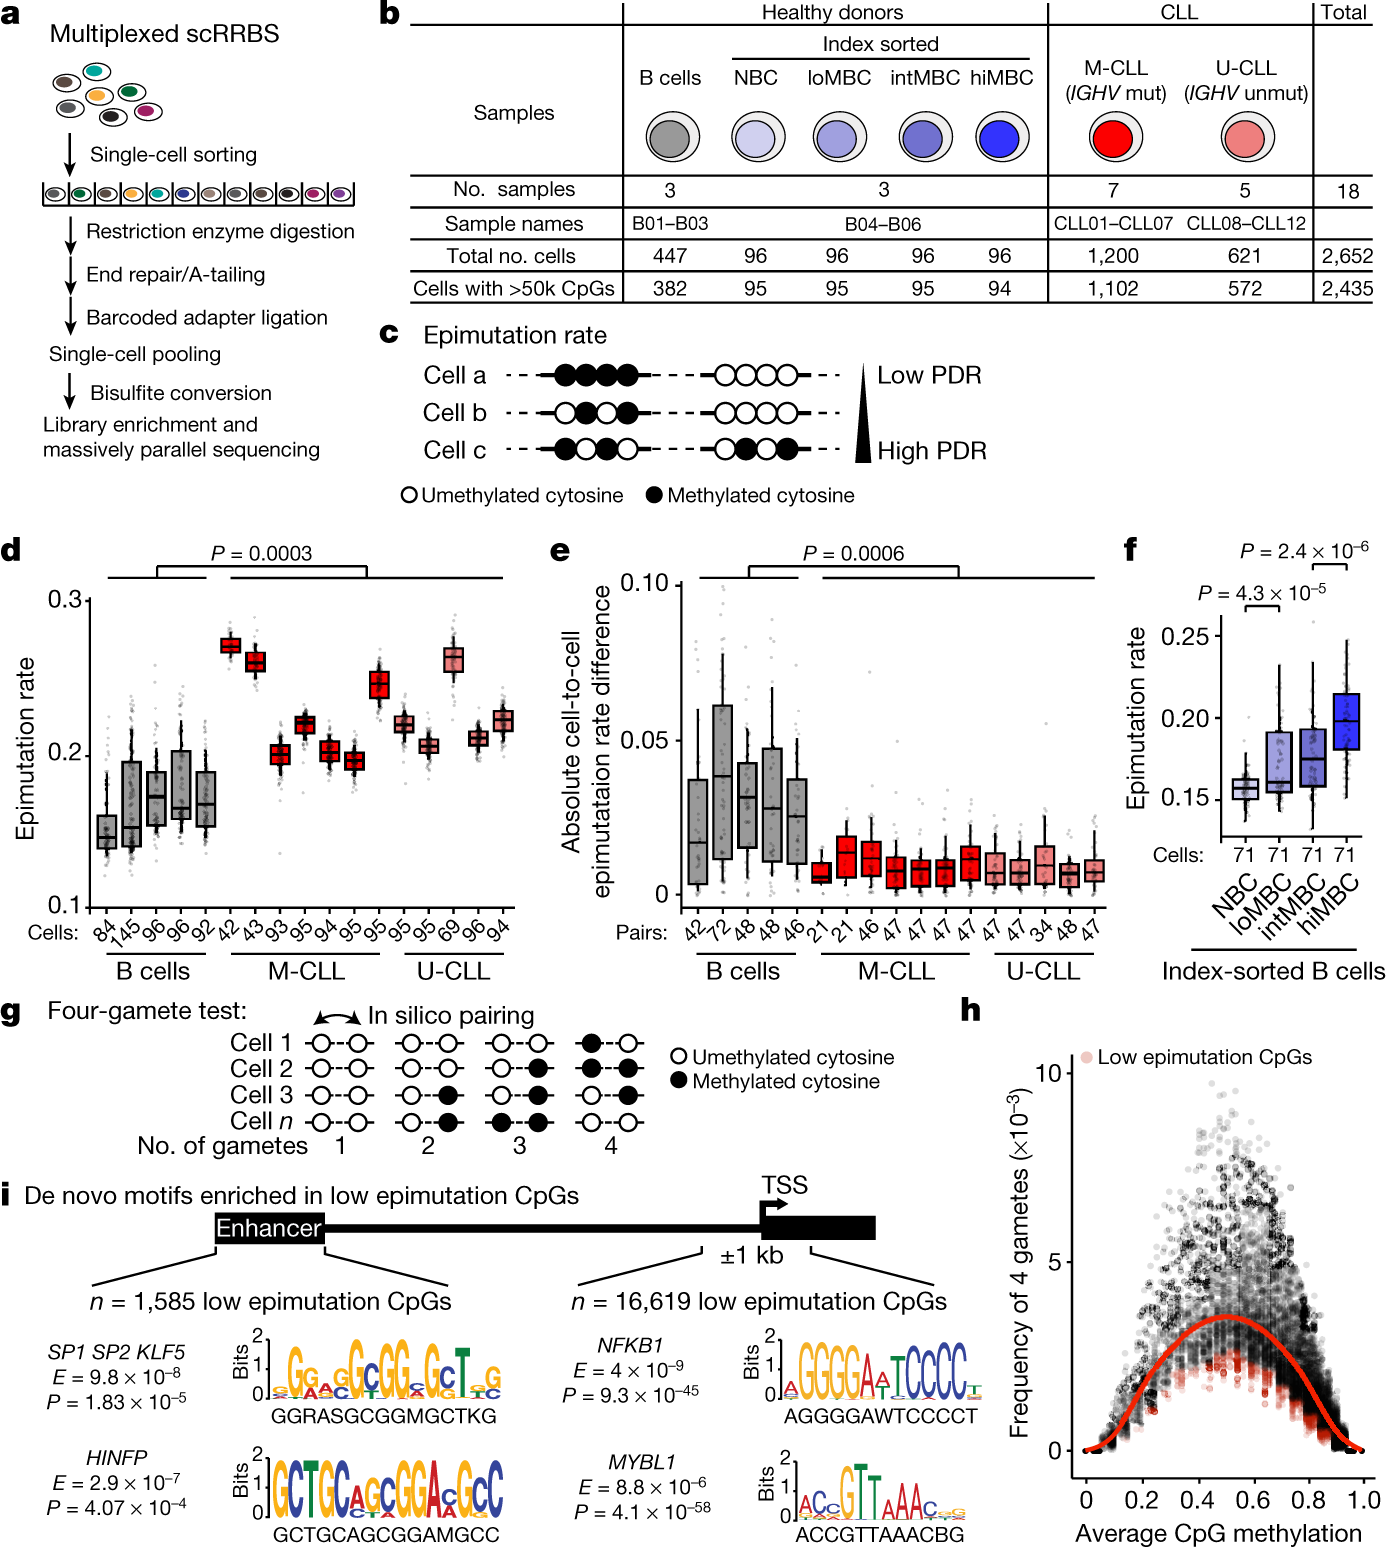 Epigenetic evolution and lineage histories of chronic lymphocytic